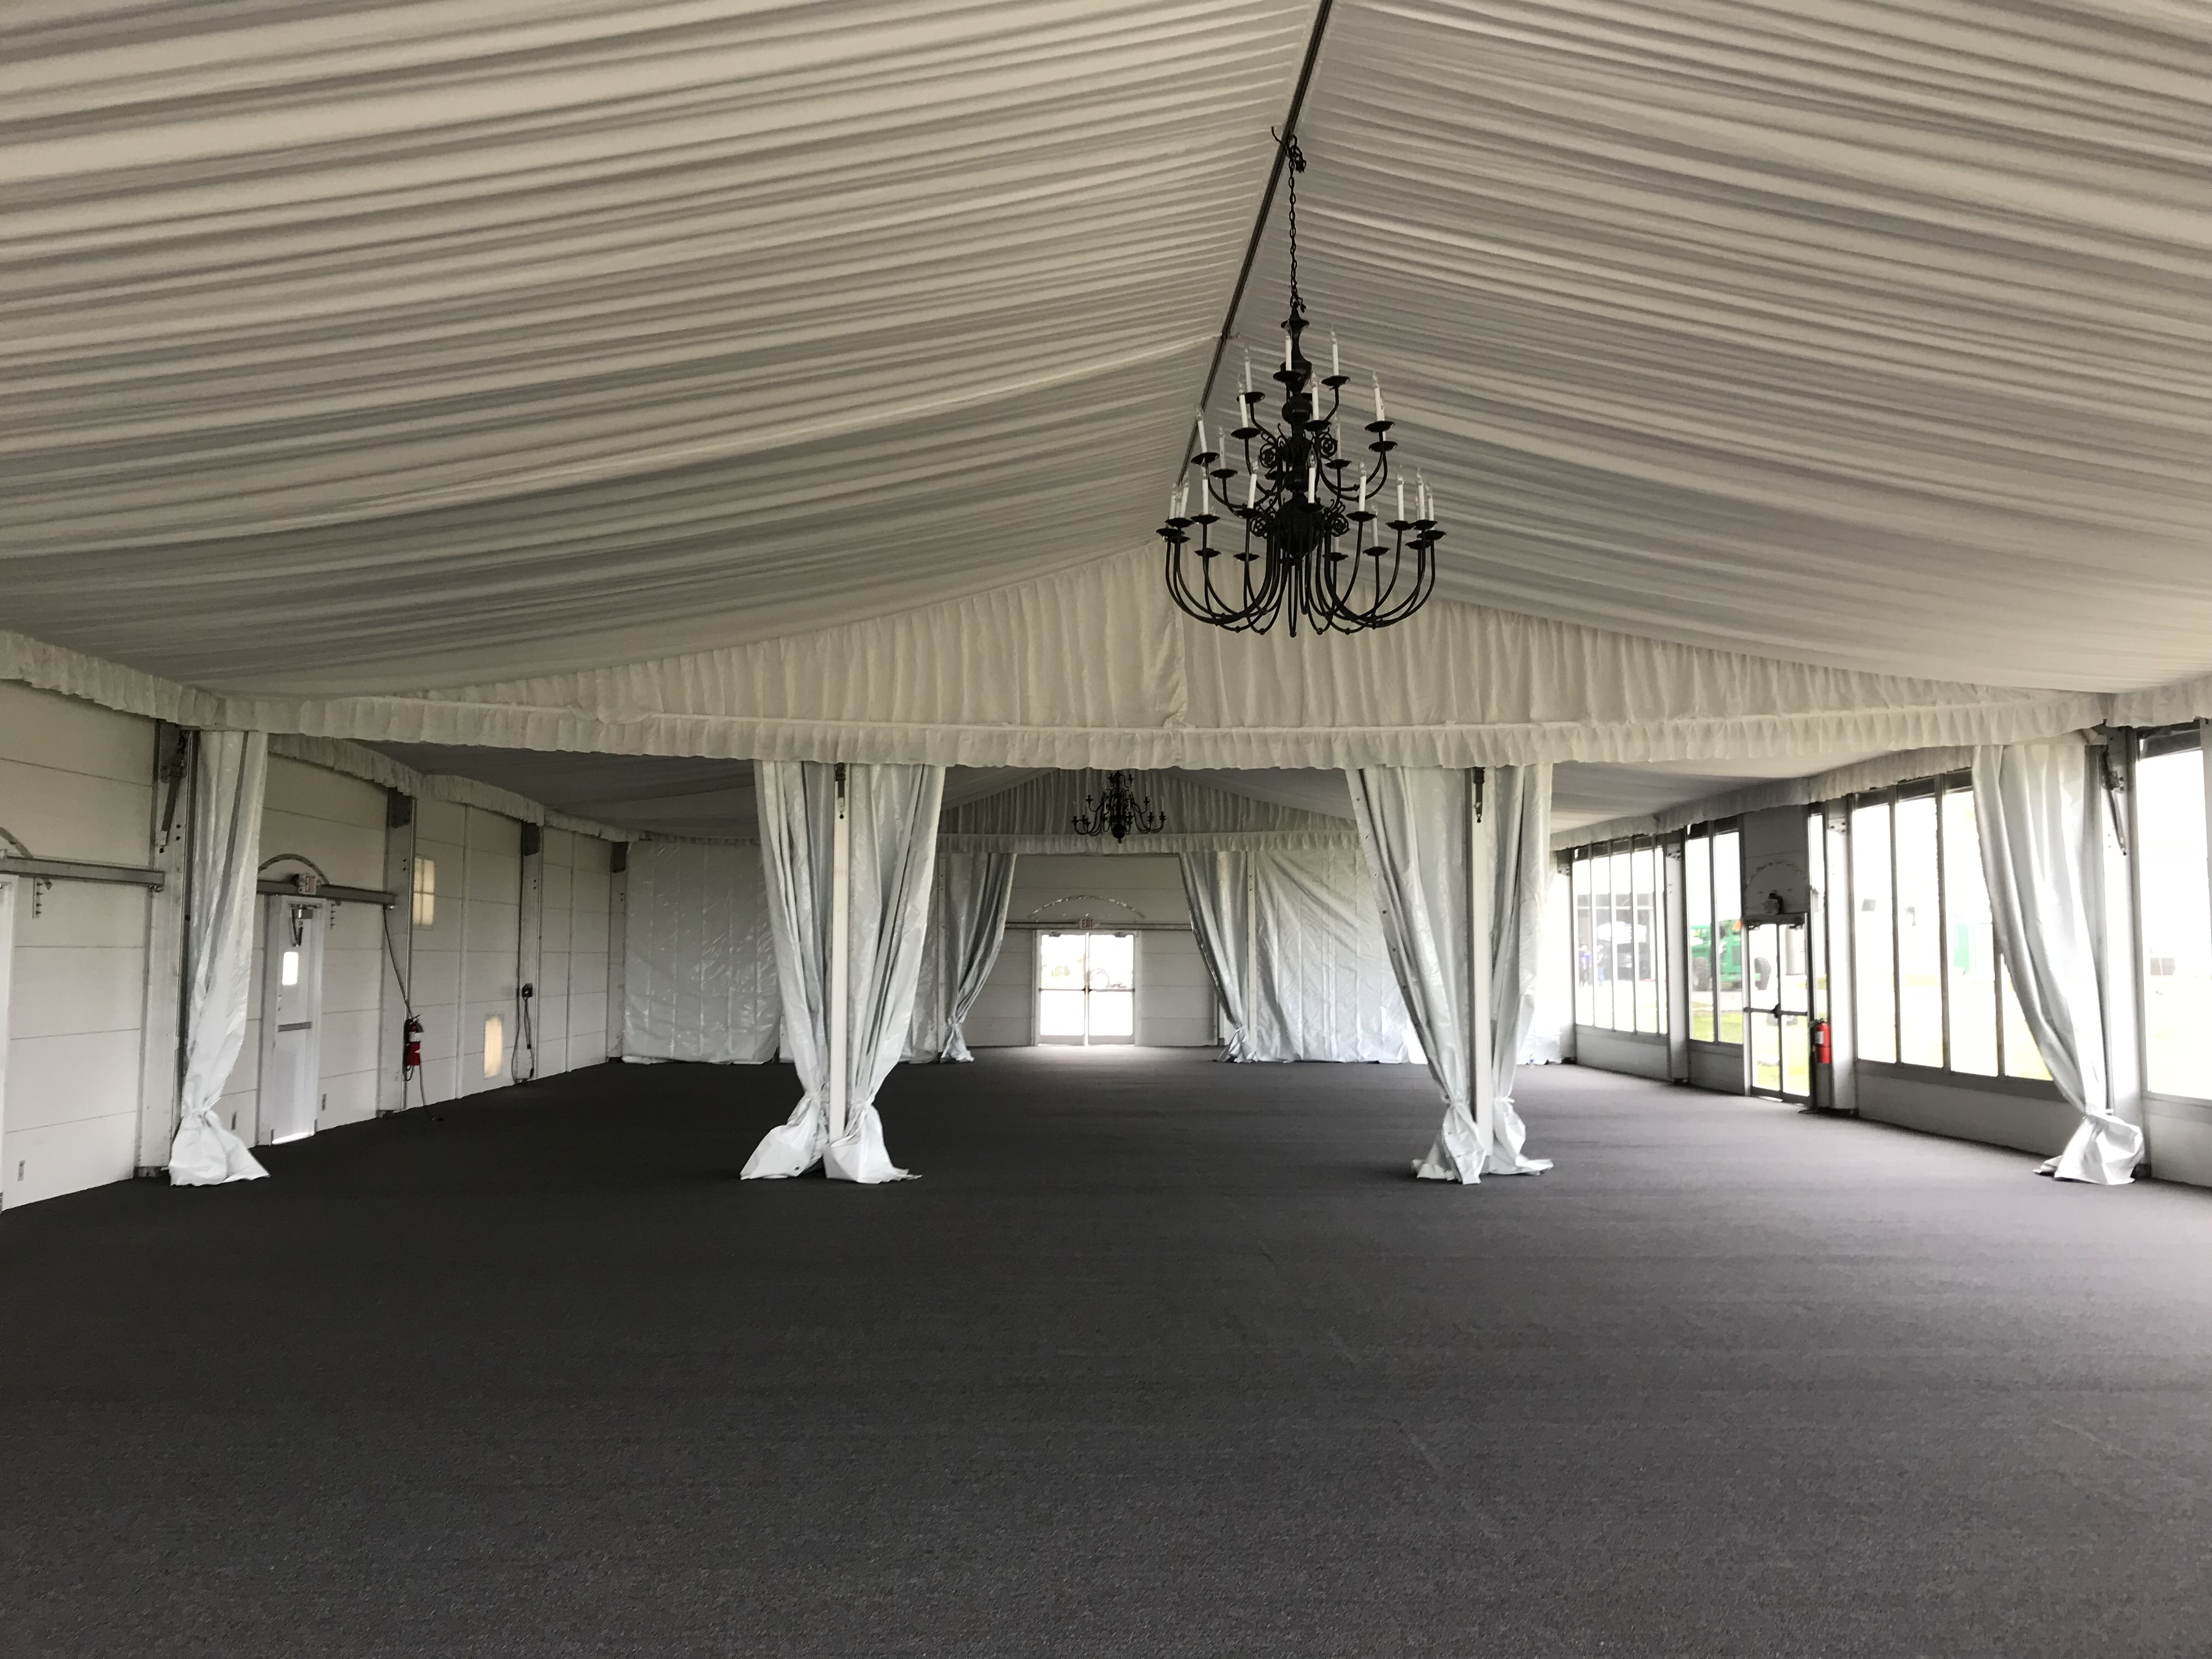 Indoor View of Outdoor Temporary Structure used for Hurricane Harvey Relief Efforts Ceiling is draped in Curtains with Chandelier